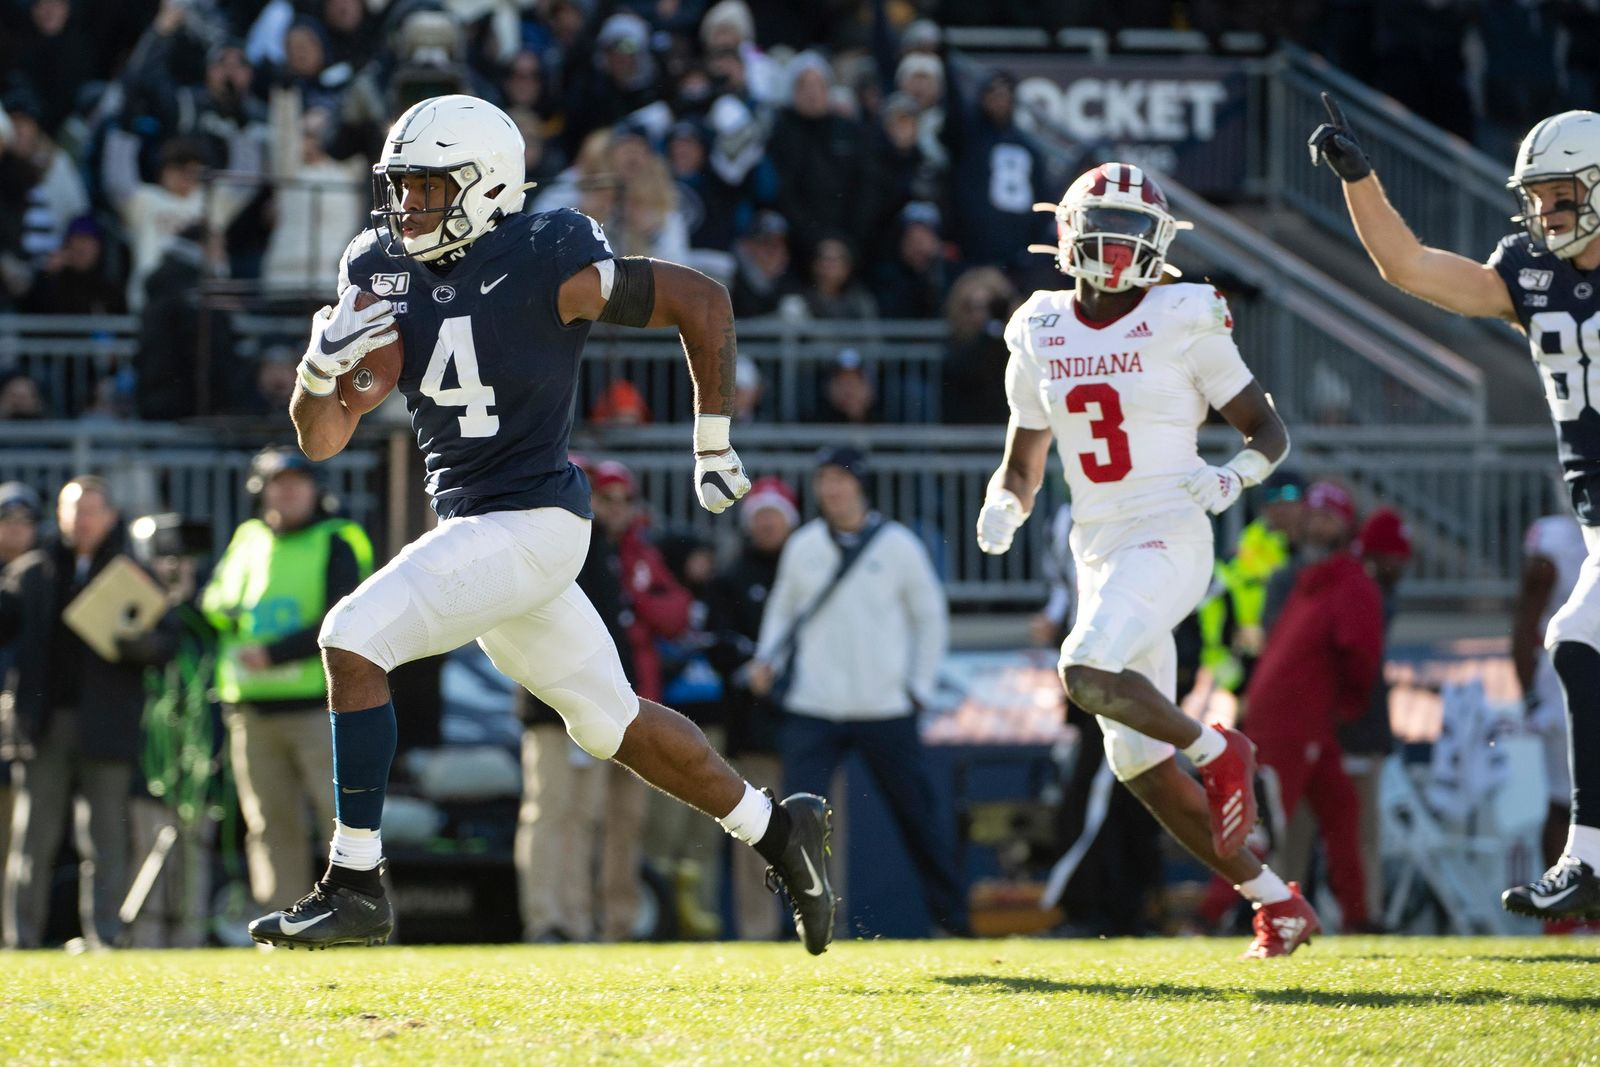 Penn State running back Journey Brown (4) eludes Indiana defensive back Tiawan Mullen (3) on his way to score a 35-yard touchdown in the third quarter of an NCAA college football game in State College, Pa., on Saturday, Nov.16, 2019. Penn State defeated 34-27. (AP Photo/Barry Reeger)